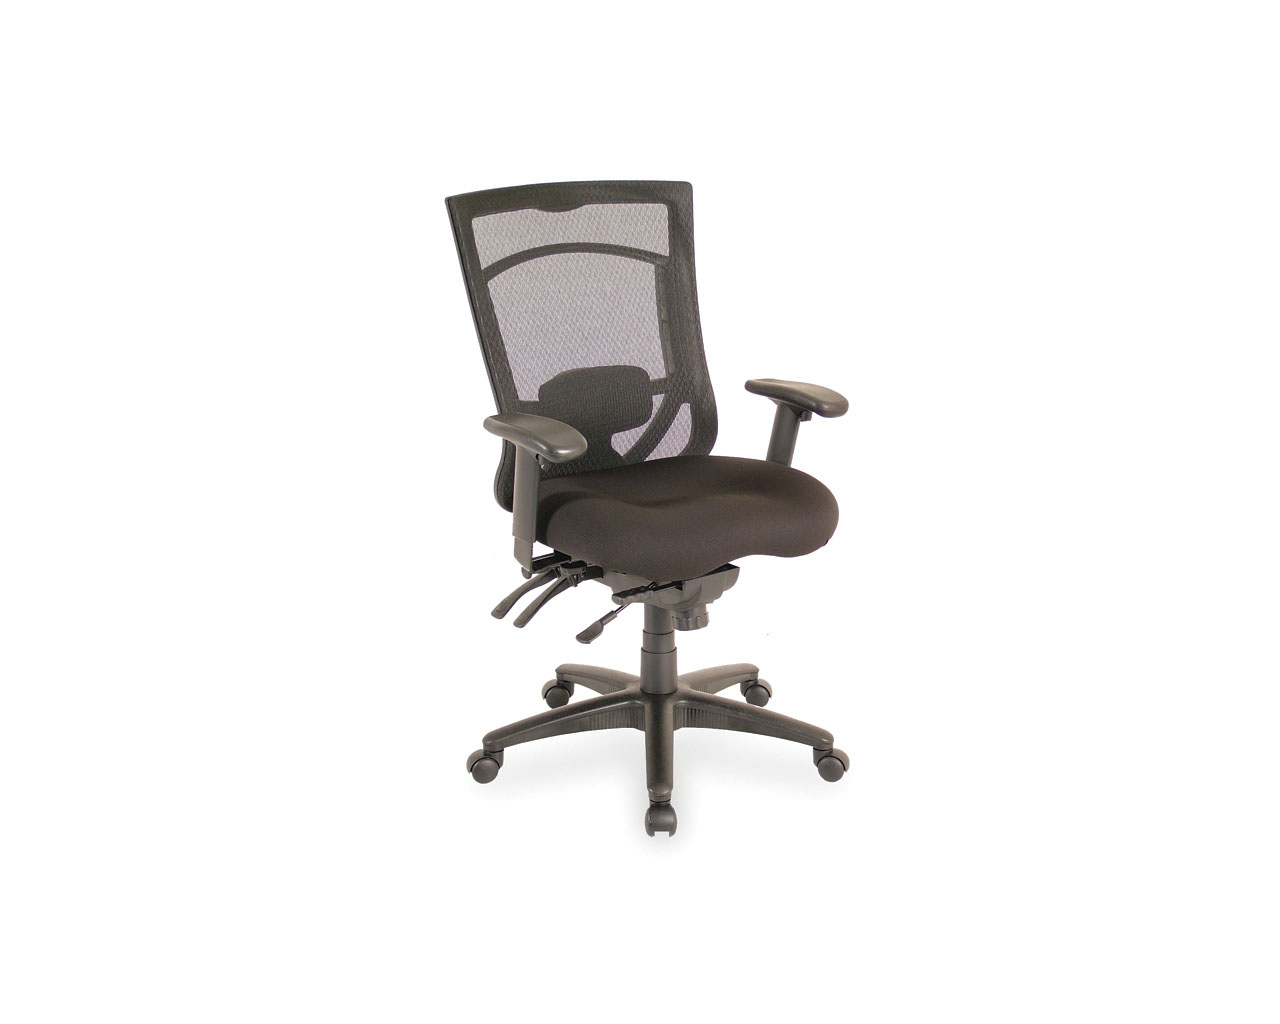 ergonomic chair pros two person carry coolmesh pro executive high back